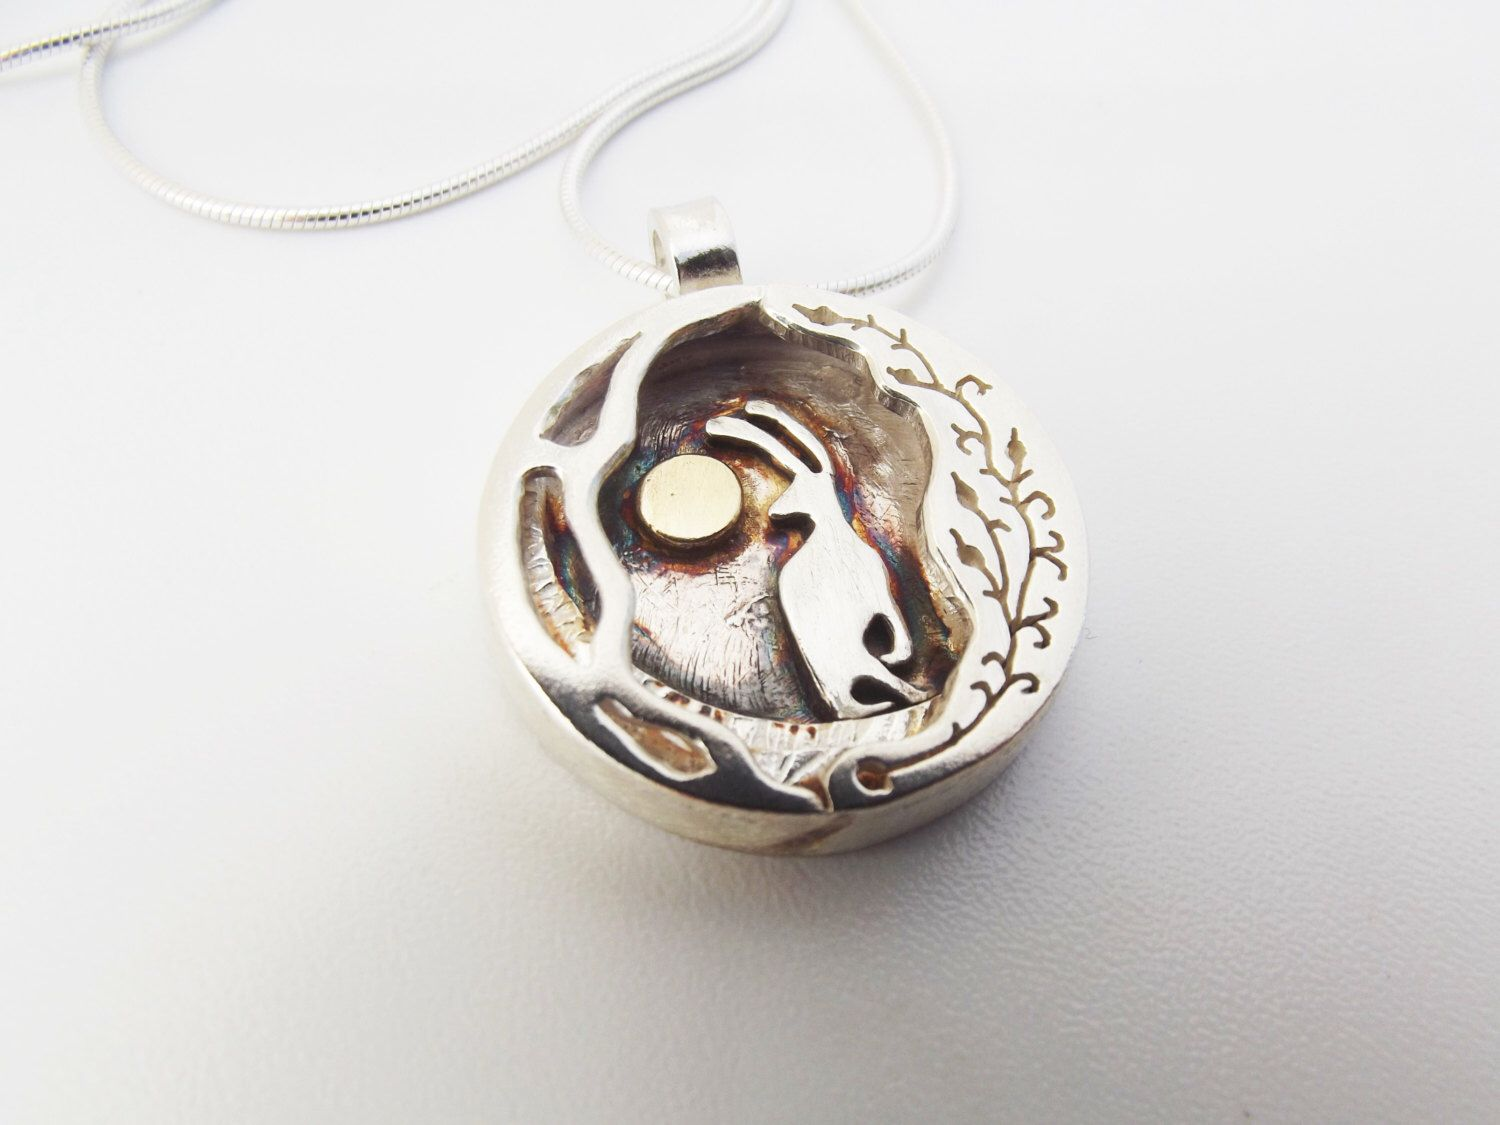 Hare and moon pendant, silver and gold, hare, moon, tree branch ...